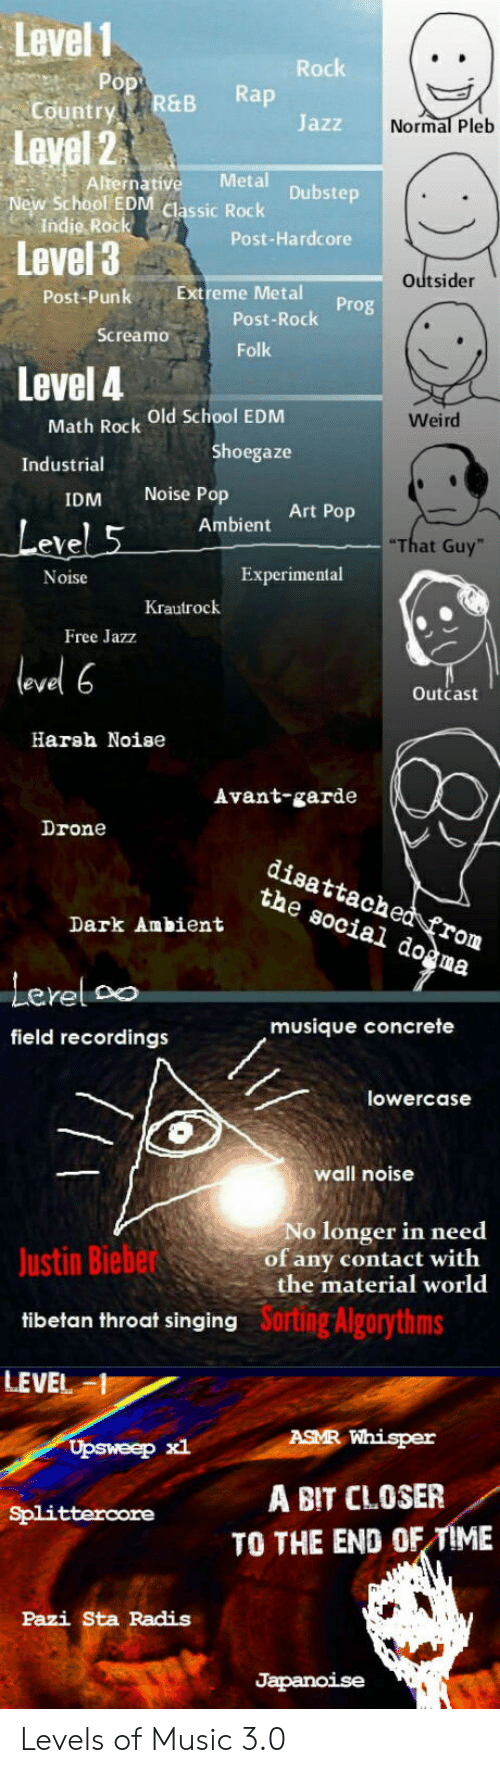 ambient: Level 1  Country  Level 2  New School EON cassi Rock  Rachk  ry R&B Rap  Jazz  Normal Pleb  Alternative Metal  Indie Rock  Level 3  Post-Hardcore  Outsider  Post-PunkExtreme Metal  Post-Rock  Folk  Screamo  Level 4  Math Rock Old School EDM  Shoegaze  Weird  Industrial  IDM Noise Pop  eve  Noise  Art Pop  Ambient  That Guy  Experimental  Krautrock  Free Jazz  level 6  Outcast  Harsh Noise  Avant-garde  Drone  disattached frorm  the social do^ma  Lerel oo  field recordings  musique concrete  lowercase  wall noise  No longer in need  of any contact with  the material world  Justin Biebe  tibetan throat singing  LEVEL  Sortng Algorythms  ASMR Whisper  Upsweep xl  Splitterore A BIT CLOSER  TO THE END OF TIME  Pazi Sta Radis Levels of Music 3.0